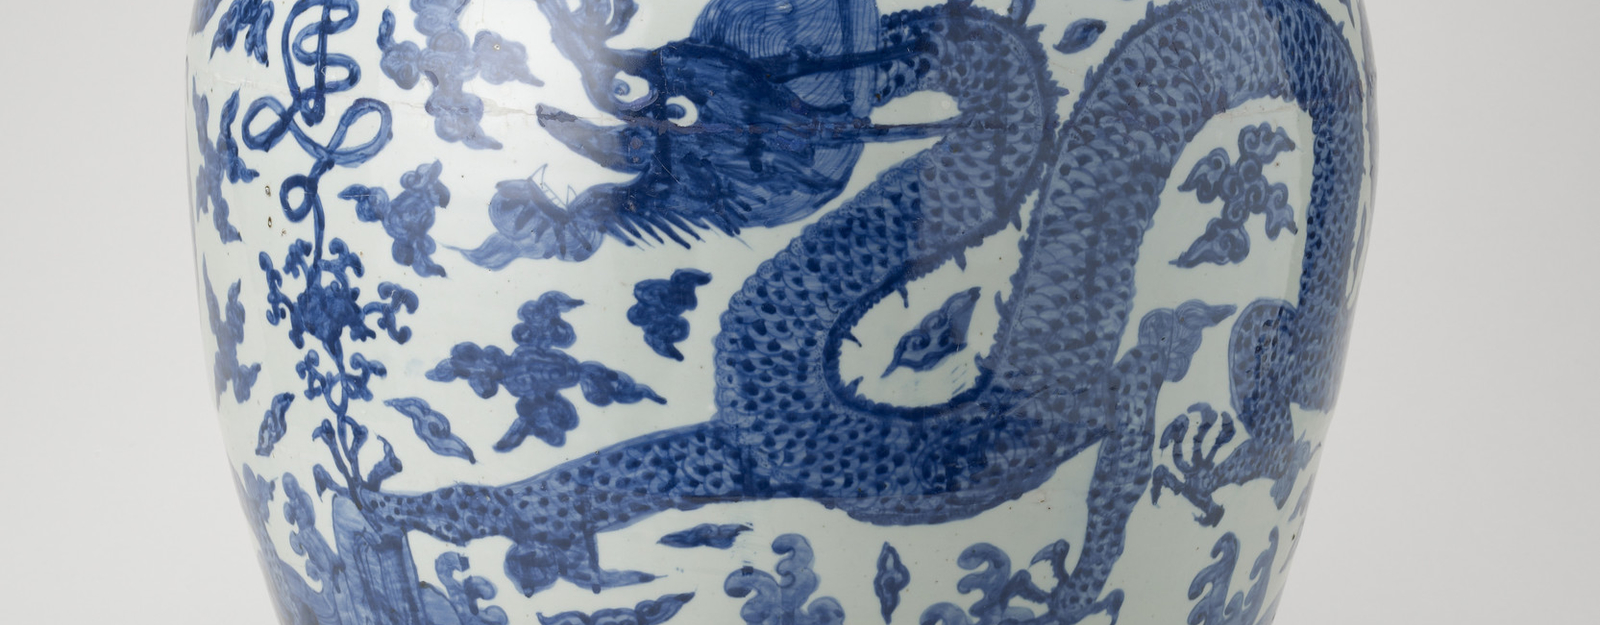 An ovoid-shaped Chinese Ming period porcelain jar painted in rich blue around the sides with two five-clawed dragons among clouds and with rocks and waves below. Round the shoulder a stylised shou (long life character) seems to grow out of the lotus